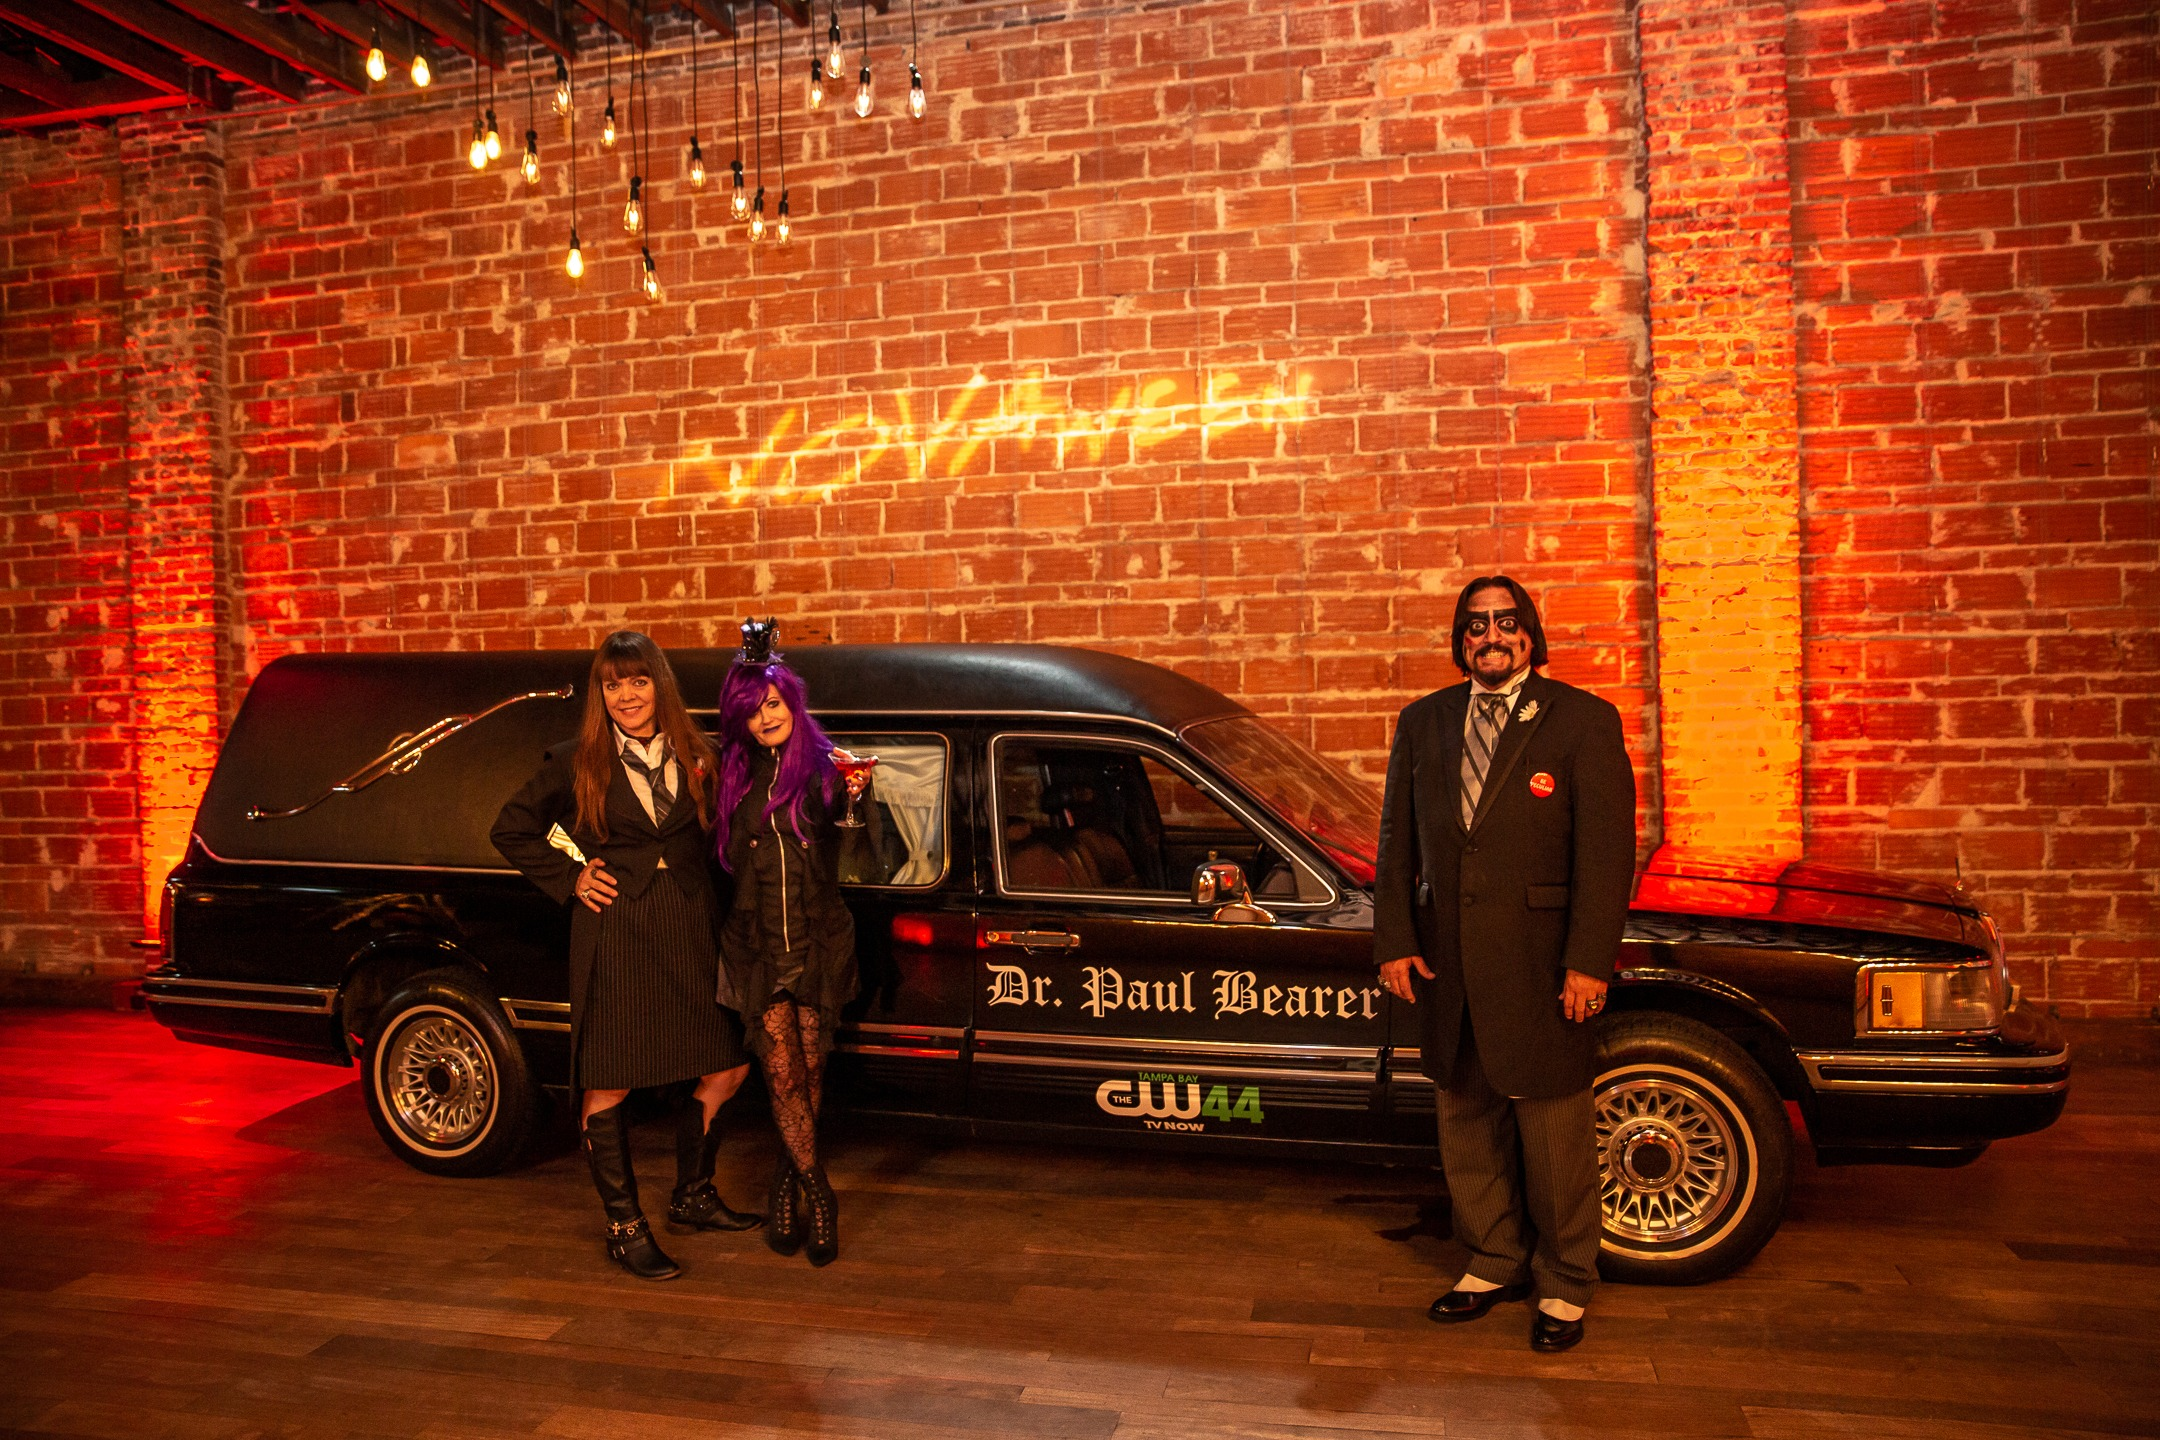 Novaween 13 Costumes and Contests on Halloween Night 10-31-2019 at Downtown St. Pete venue NOVA 535 Dr Paul Bearer with Nancy Alexander